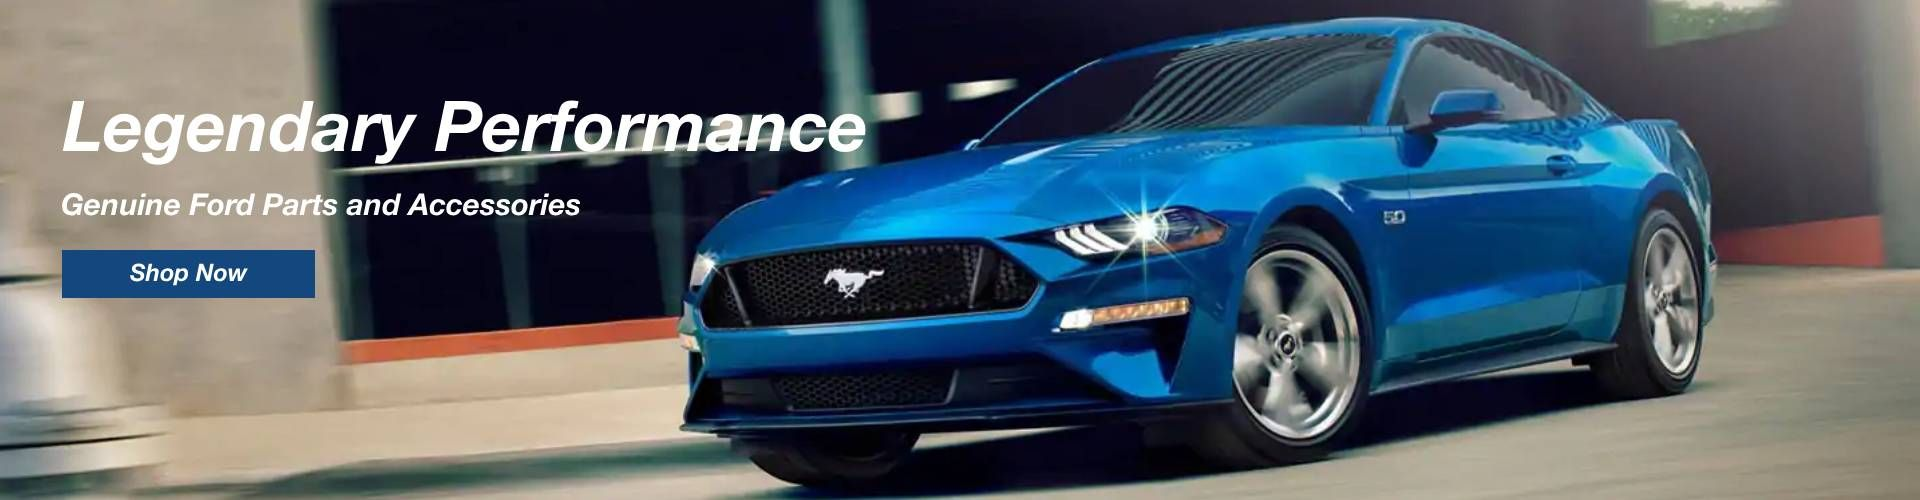 Ford Discount Parts Banner 1